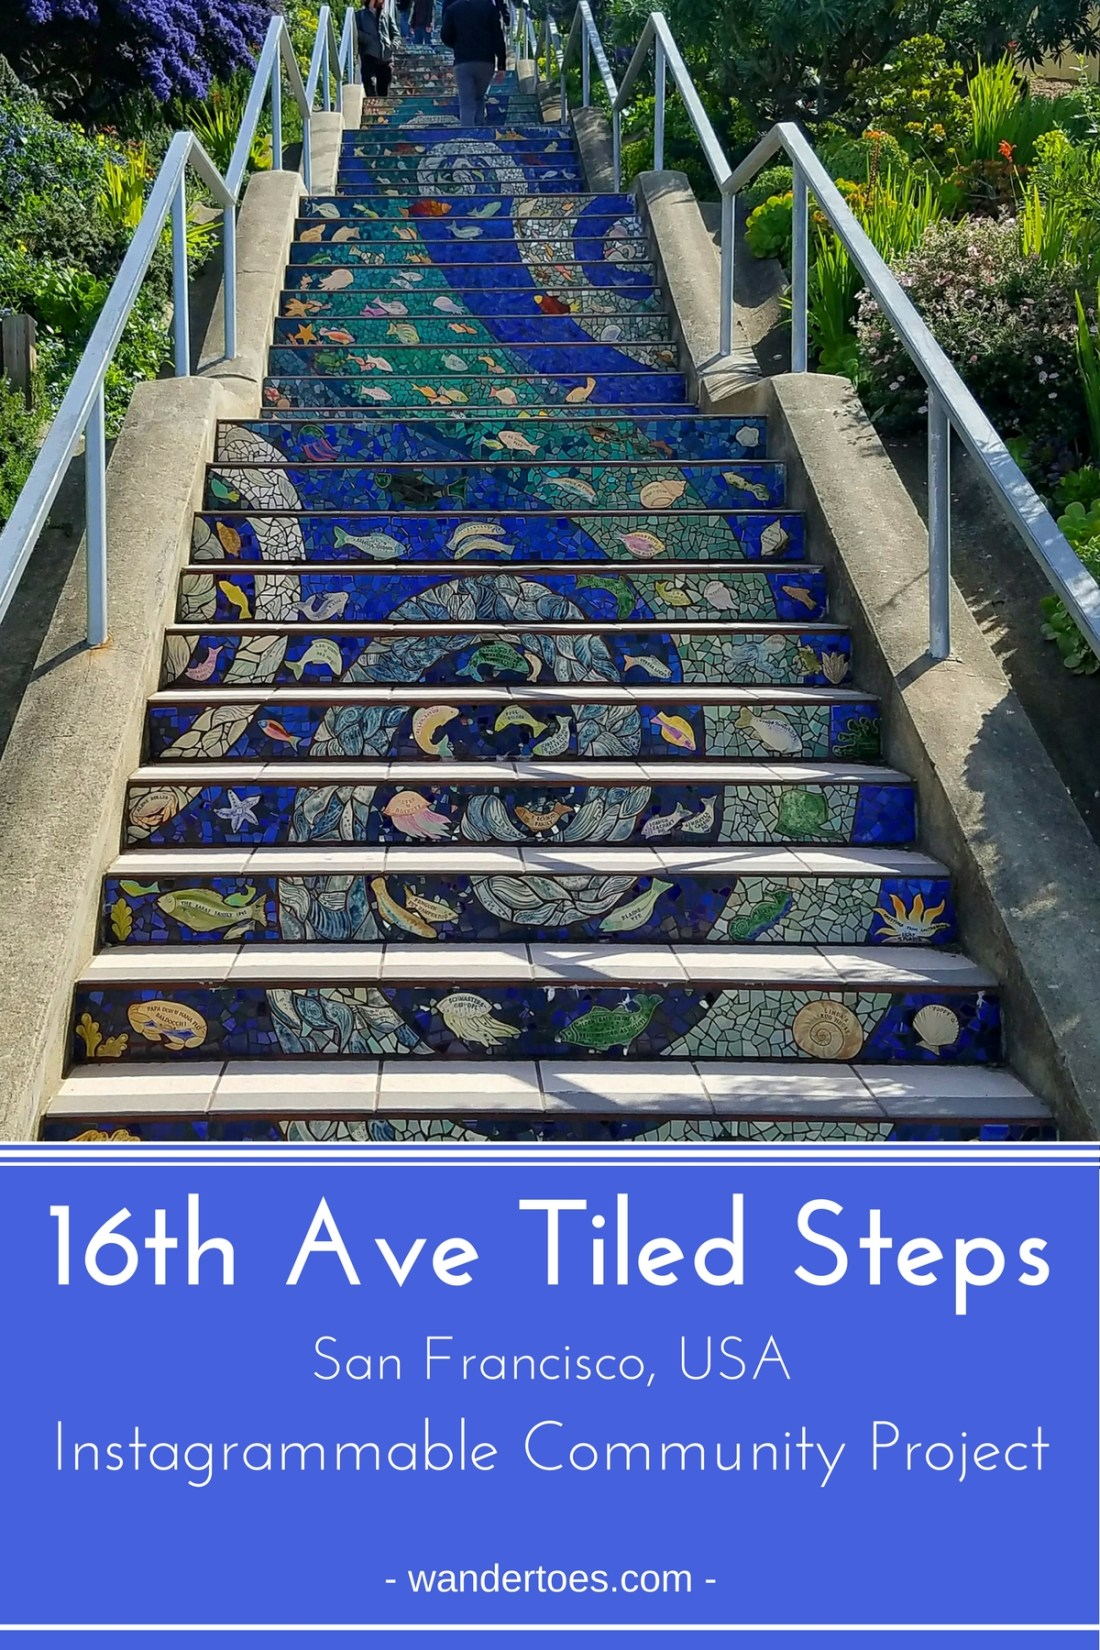 San Francisco, USA: The famous 16th Avenue Tile Stairs are more than an instagrammer's dream, these stairs are the culmination of a neighborhood's vision and desire to combine community building and beautification. San Francisco Tile Stairs | Stair Murals | Stair Mural | Moraga Street Tile Stairs | 16th Avenue Tile Steps | #TiledSteps #SanFranciscoTiledSteps #16thAveTiledSteps #StairMurals